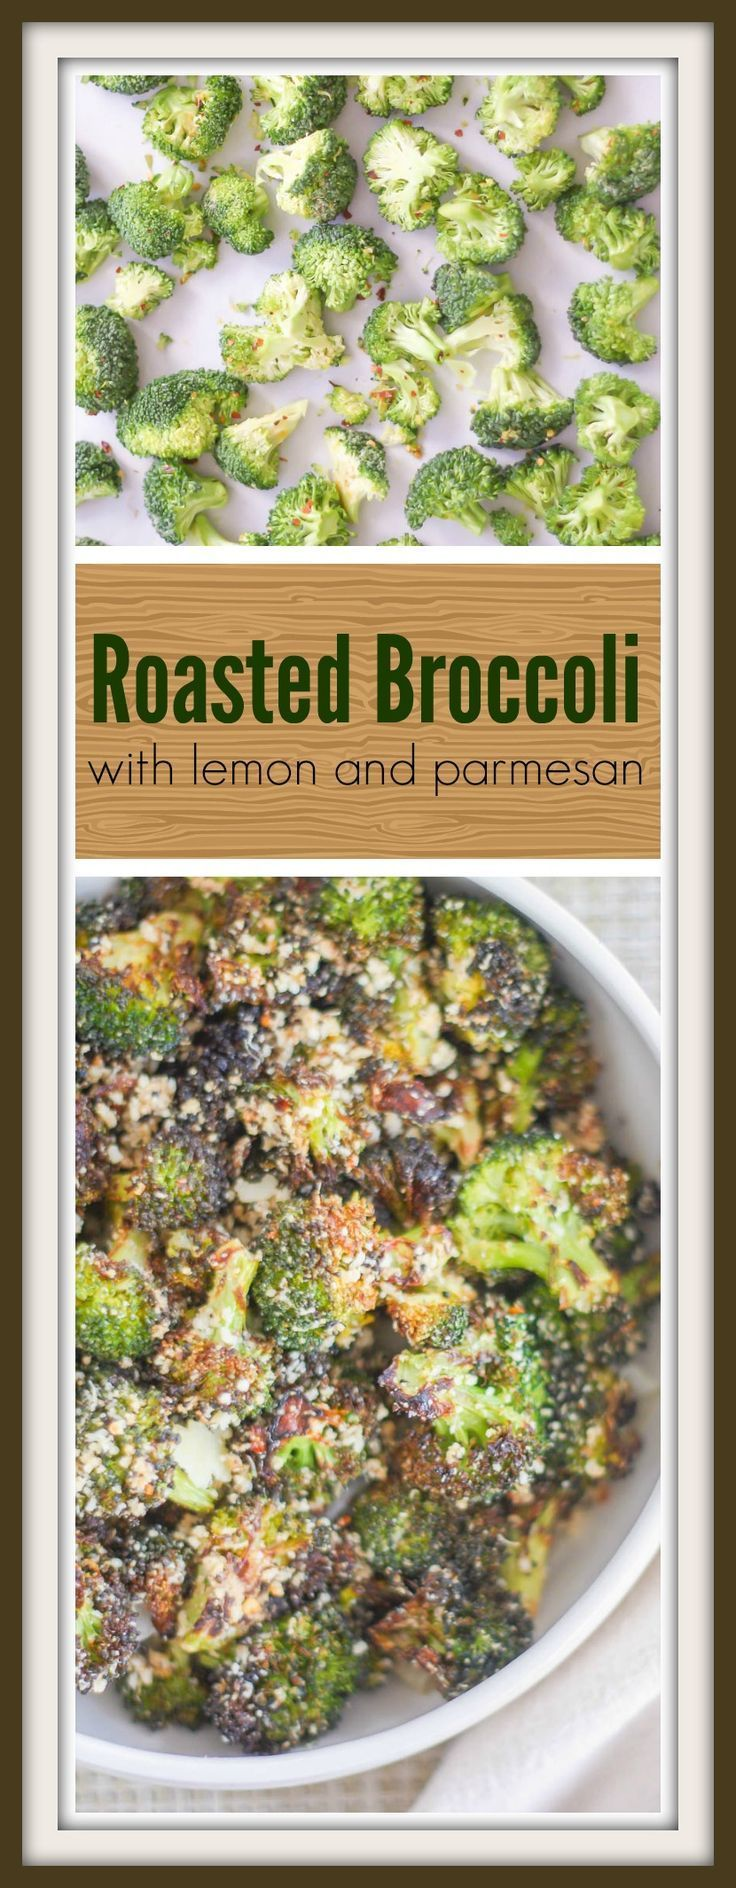 Roasted broccoli tossed with lemon and parmesan. You'll never steam it again!